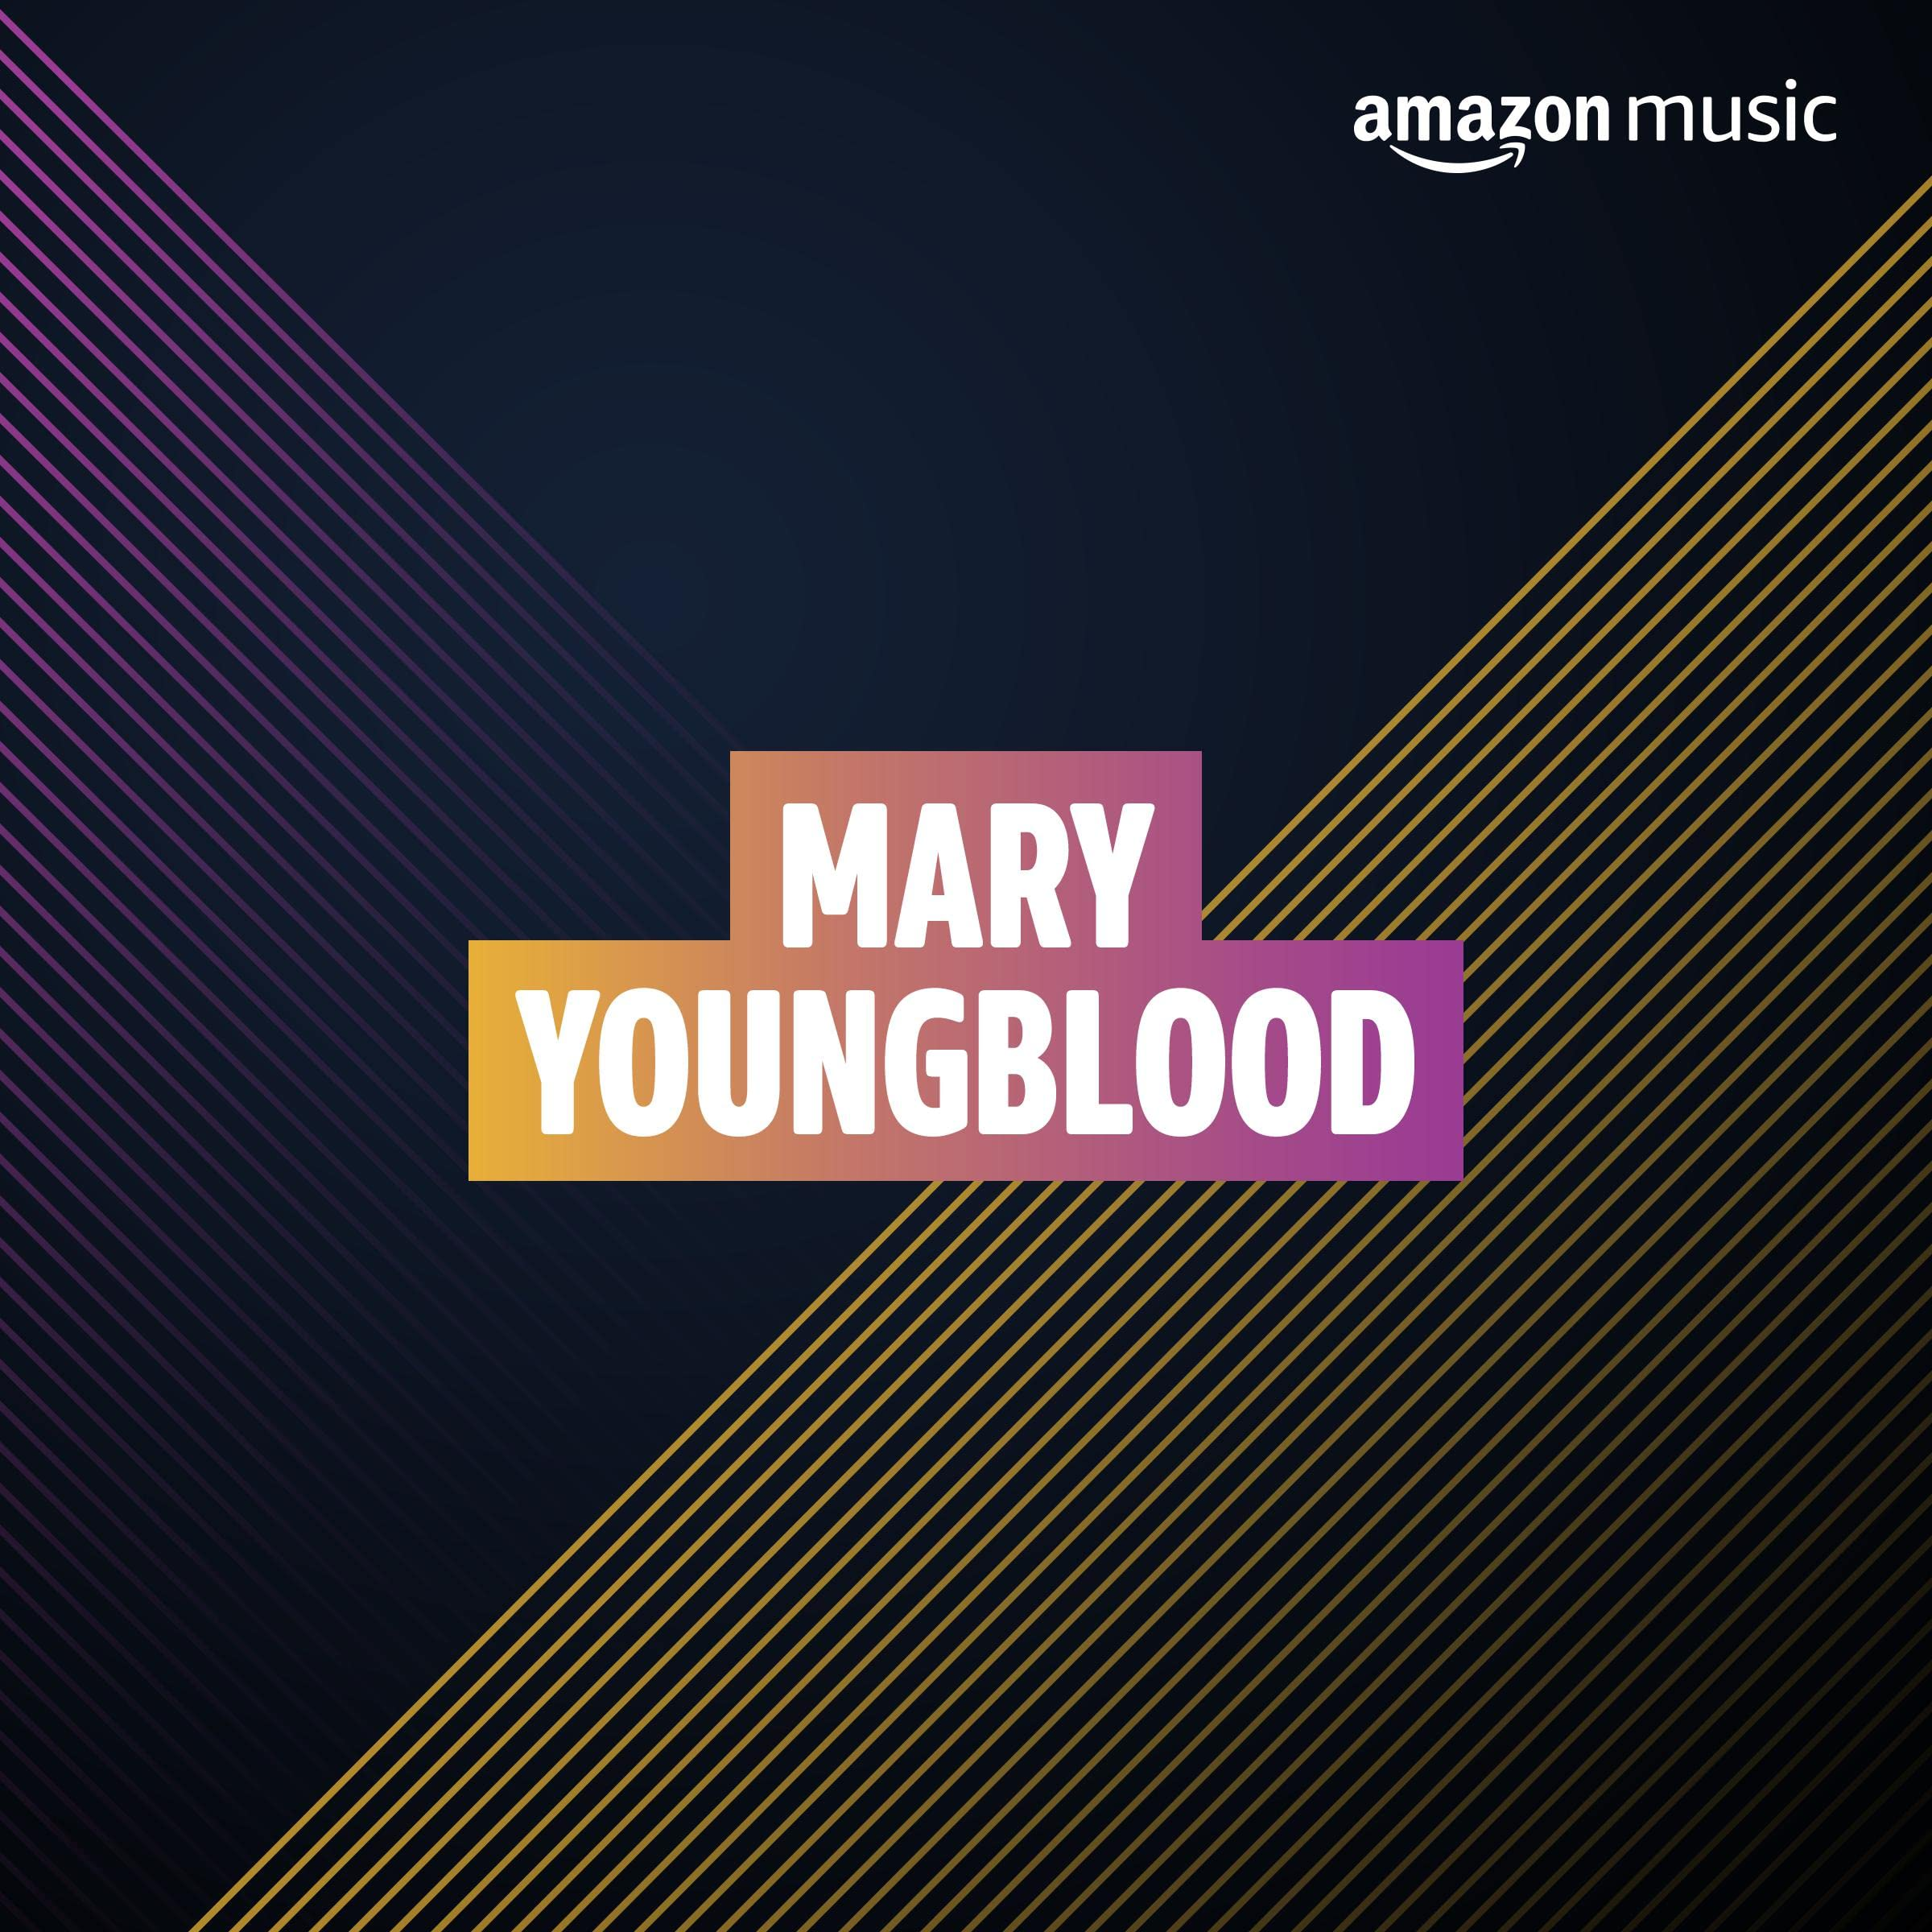 Mary Youngblood